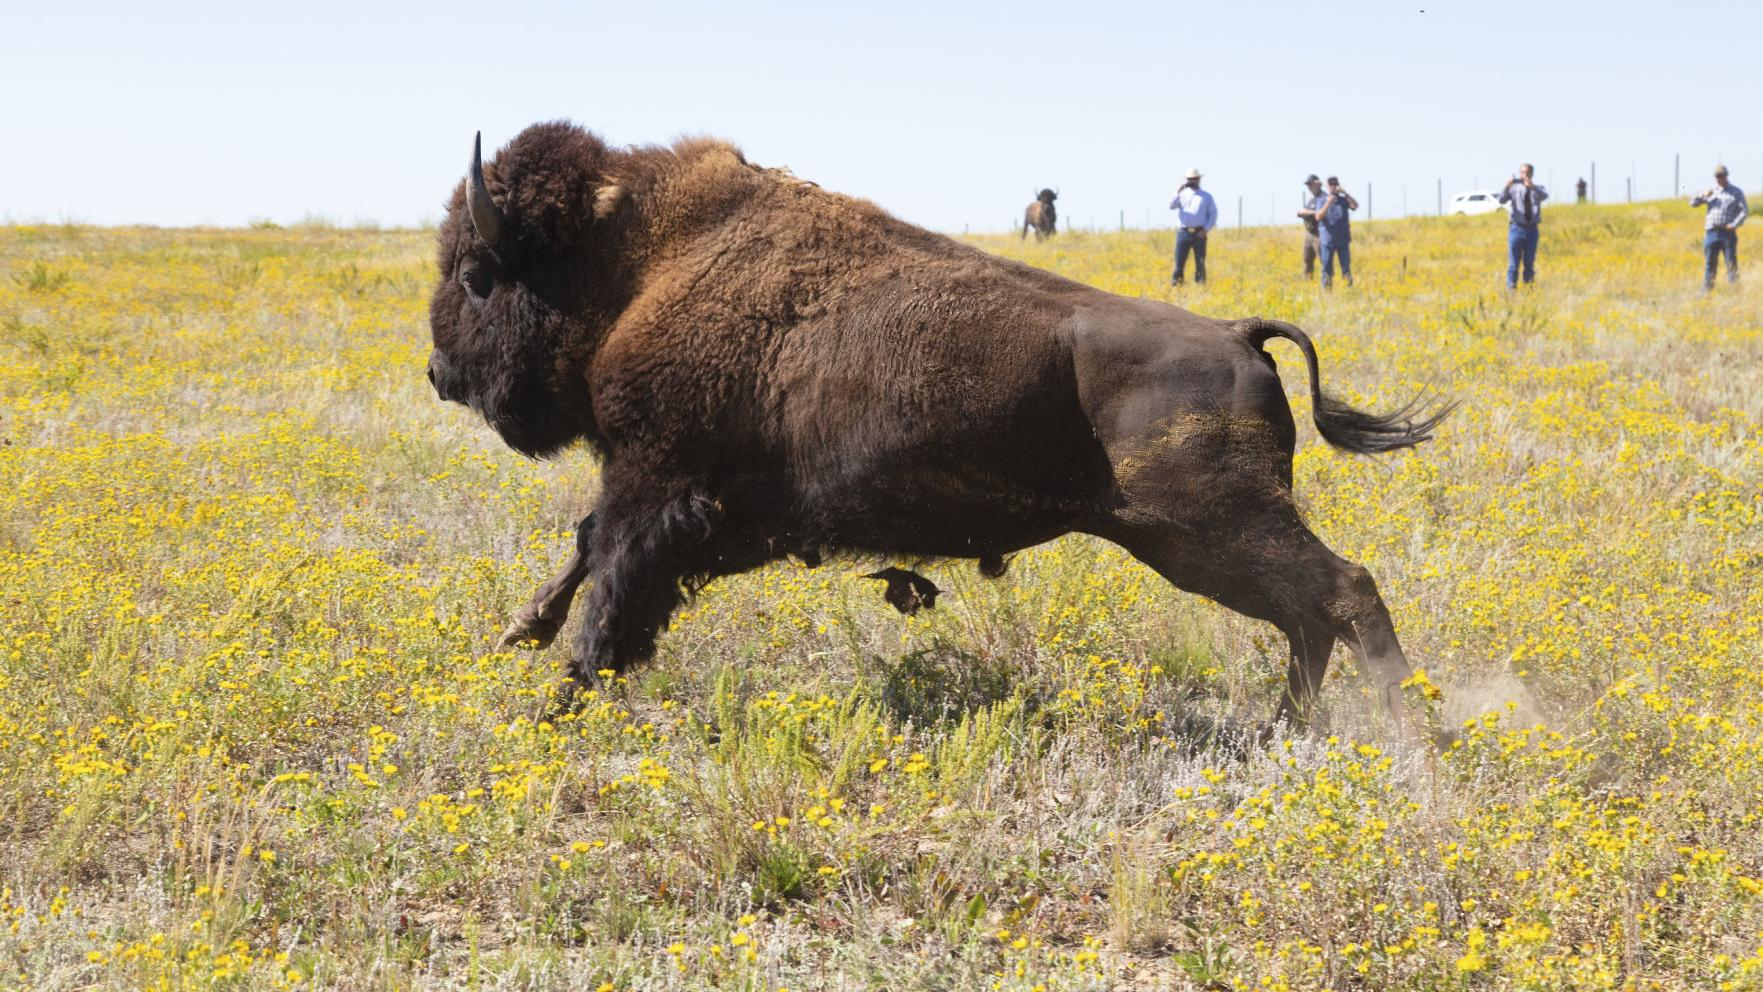 Wildlife officials nix protections for Yellowstone bison, in favor of protecting rare bee and squirrel